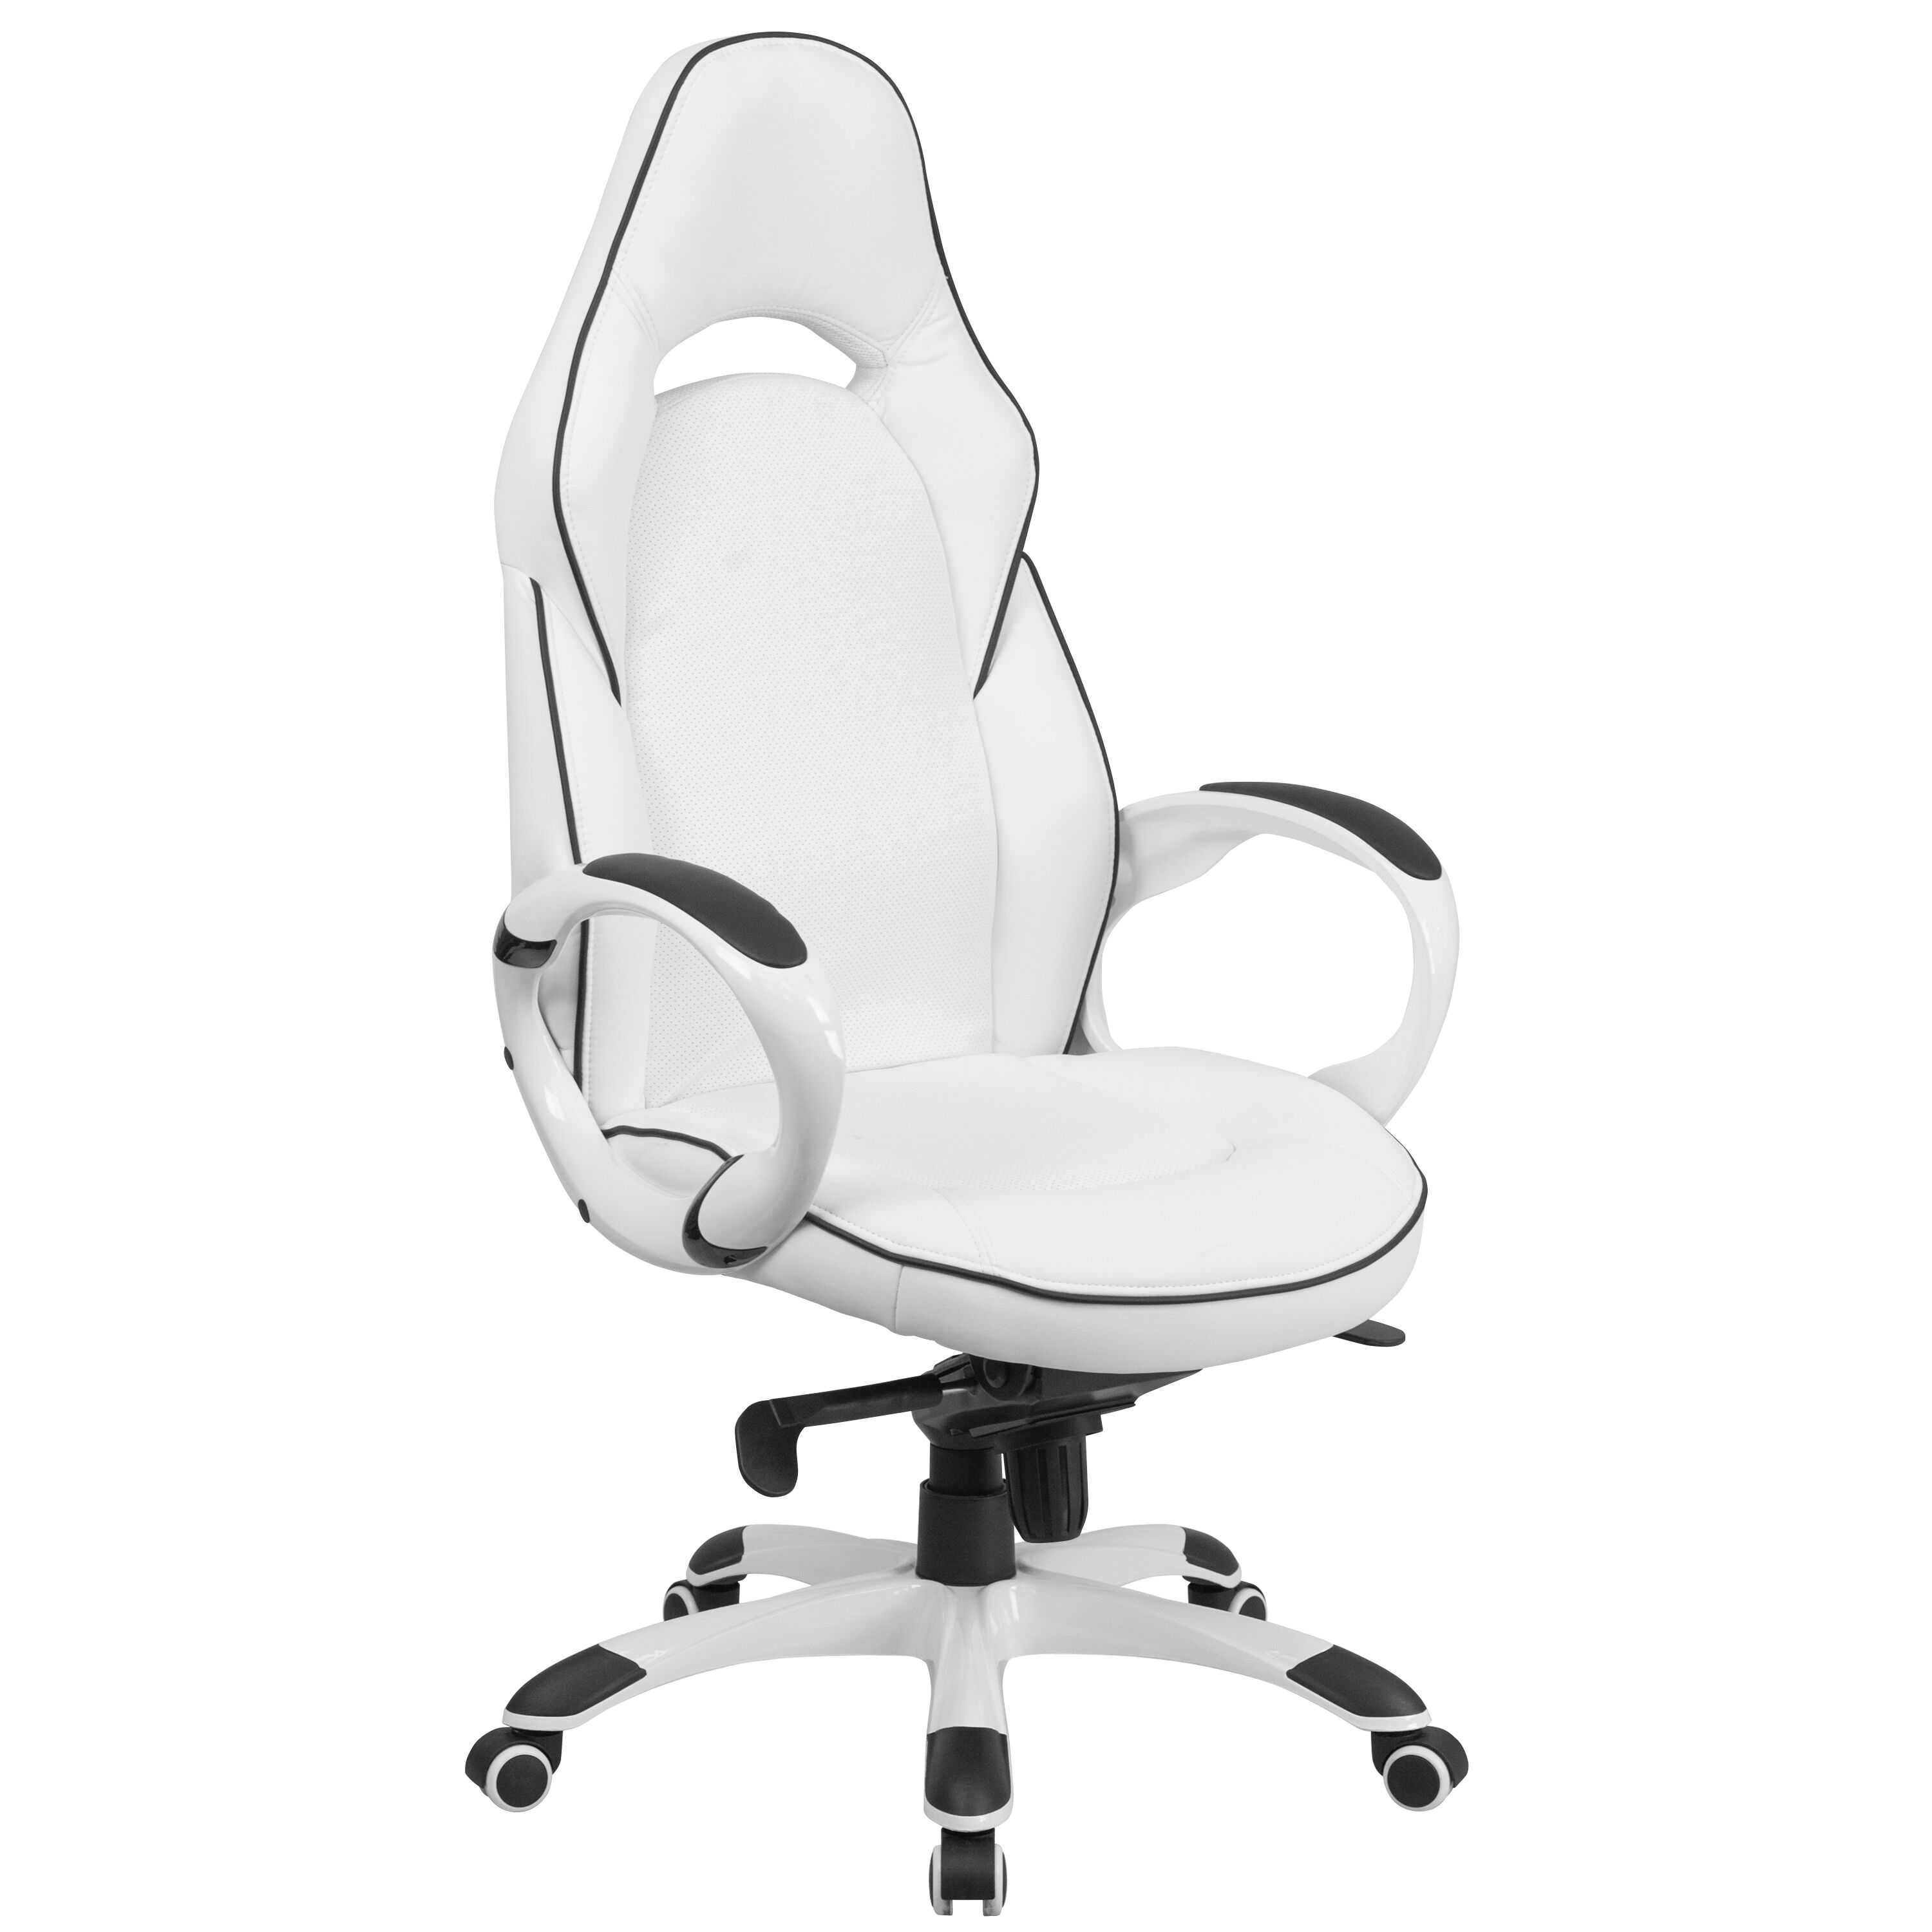 ... Our High Back White Vinyl Executive Swivel Chair with Black Trim and Arms is on sale ...  sc 1 st  Church Chairs & White High Back Vinyl Chair CH-CX0496H01-GG | ChurchChairs4Less.com